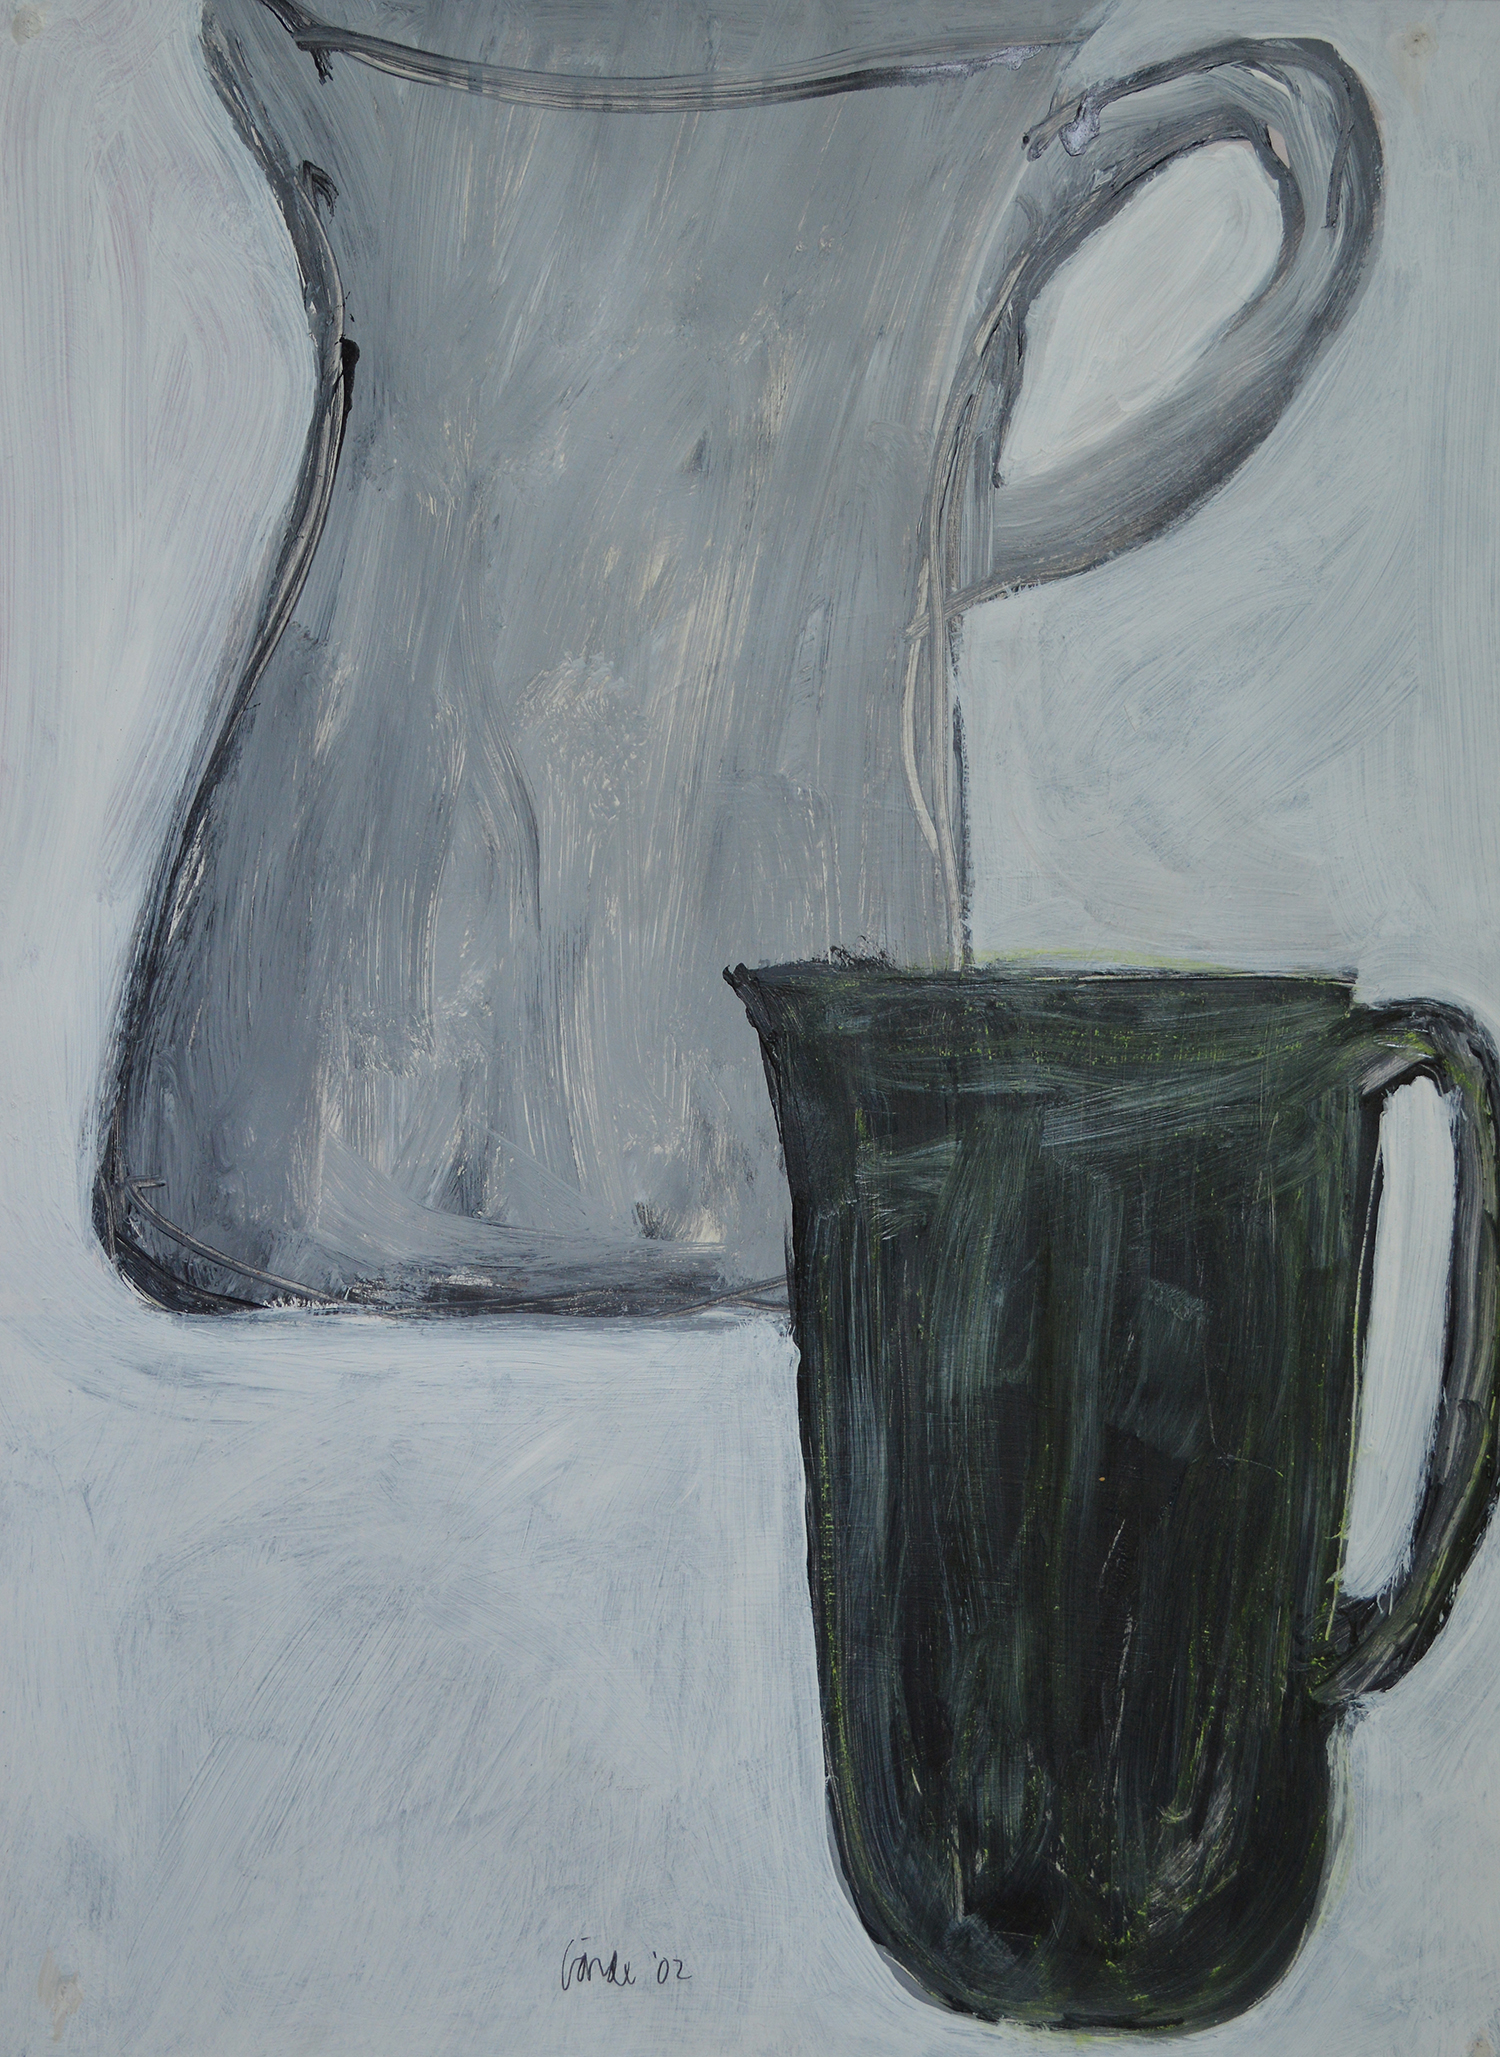 Two Pitchers . 2002.   Acrylic on paper, 30 x 22 in. (76 x 56 cm.)